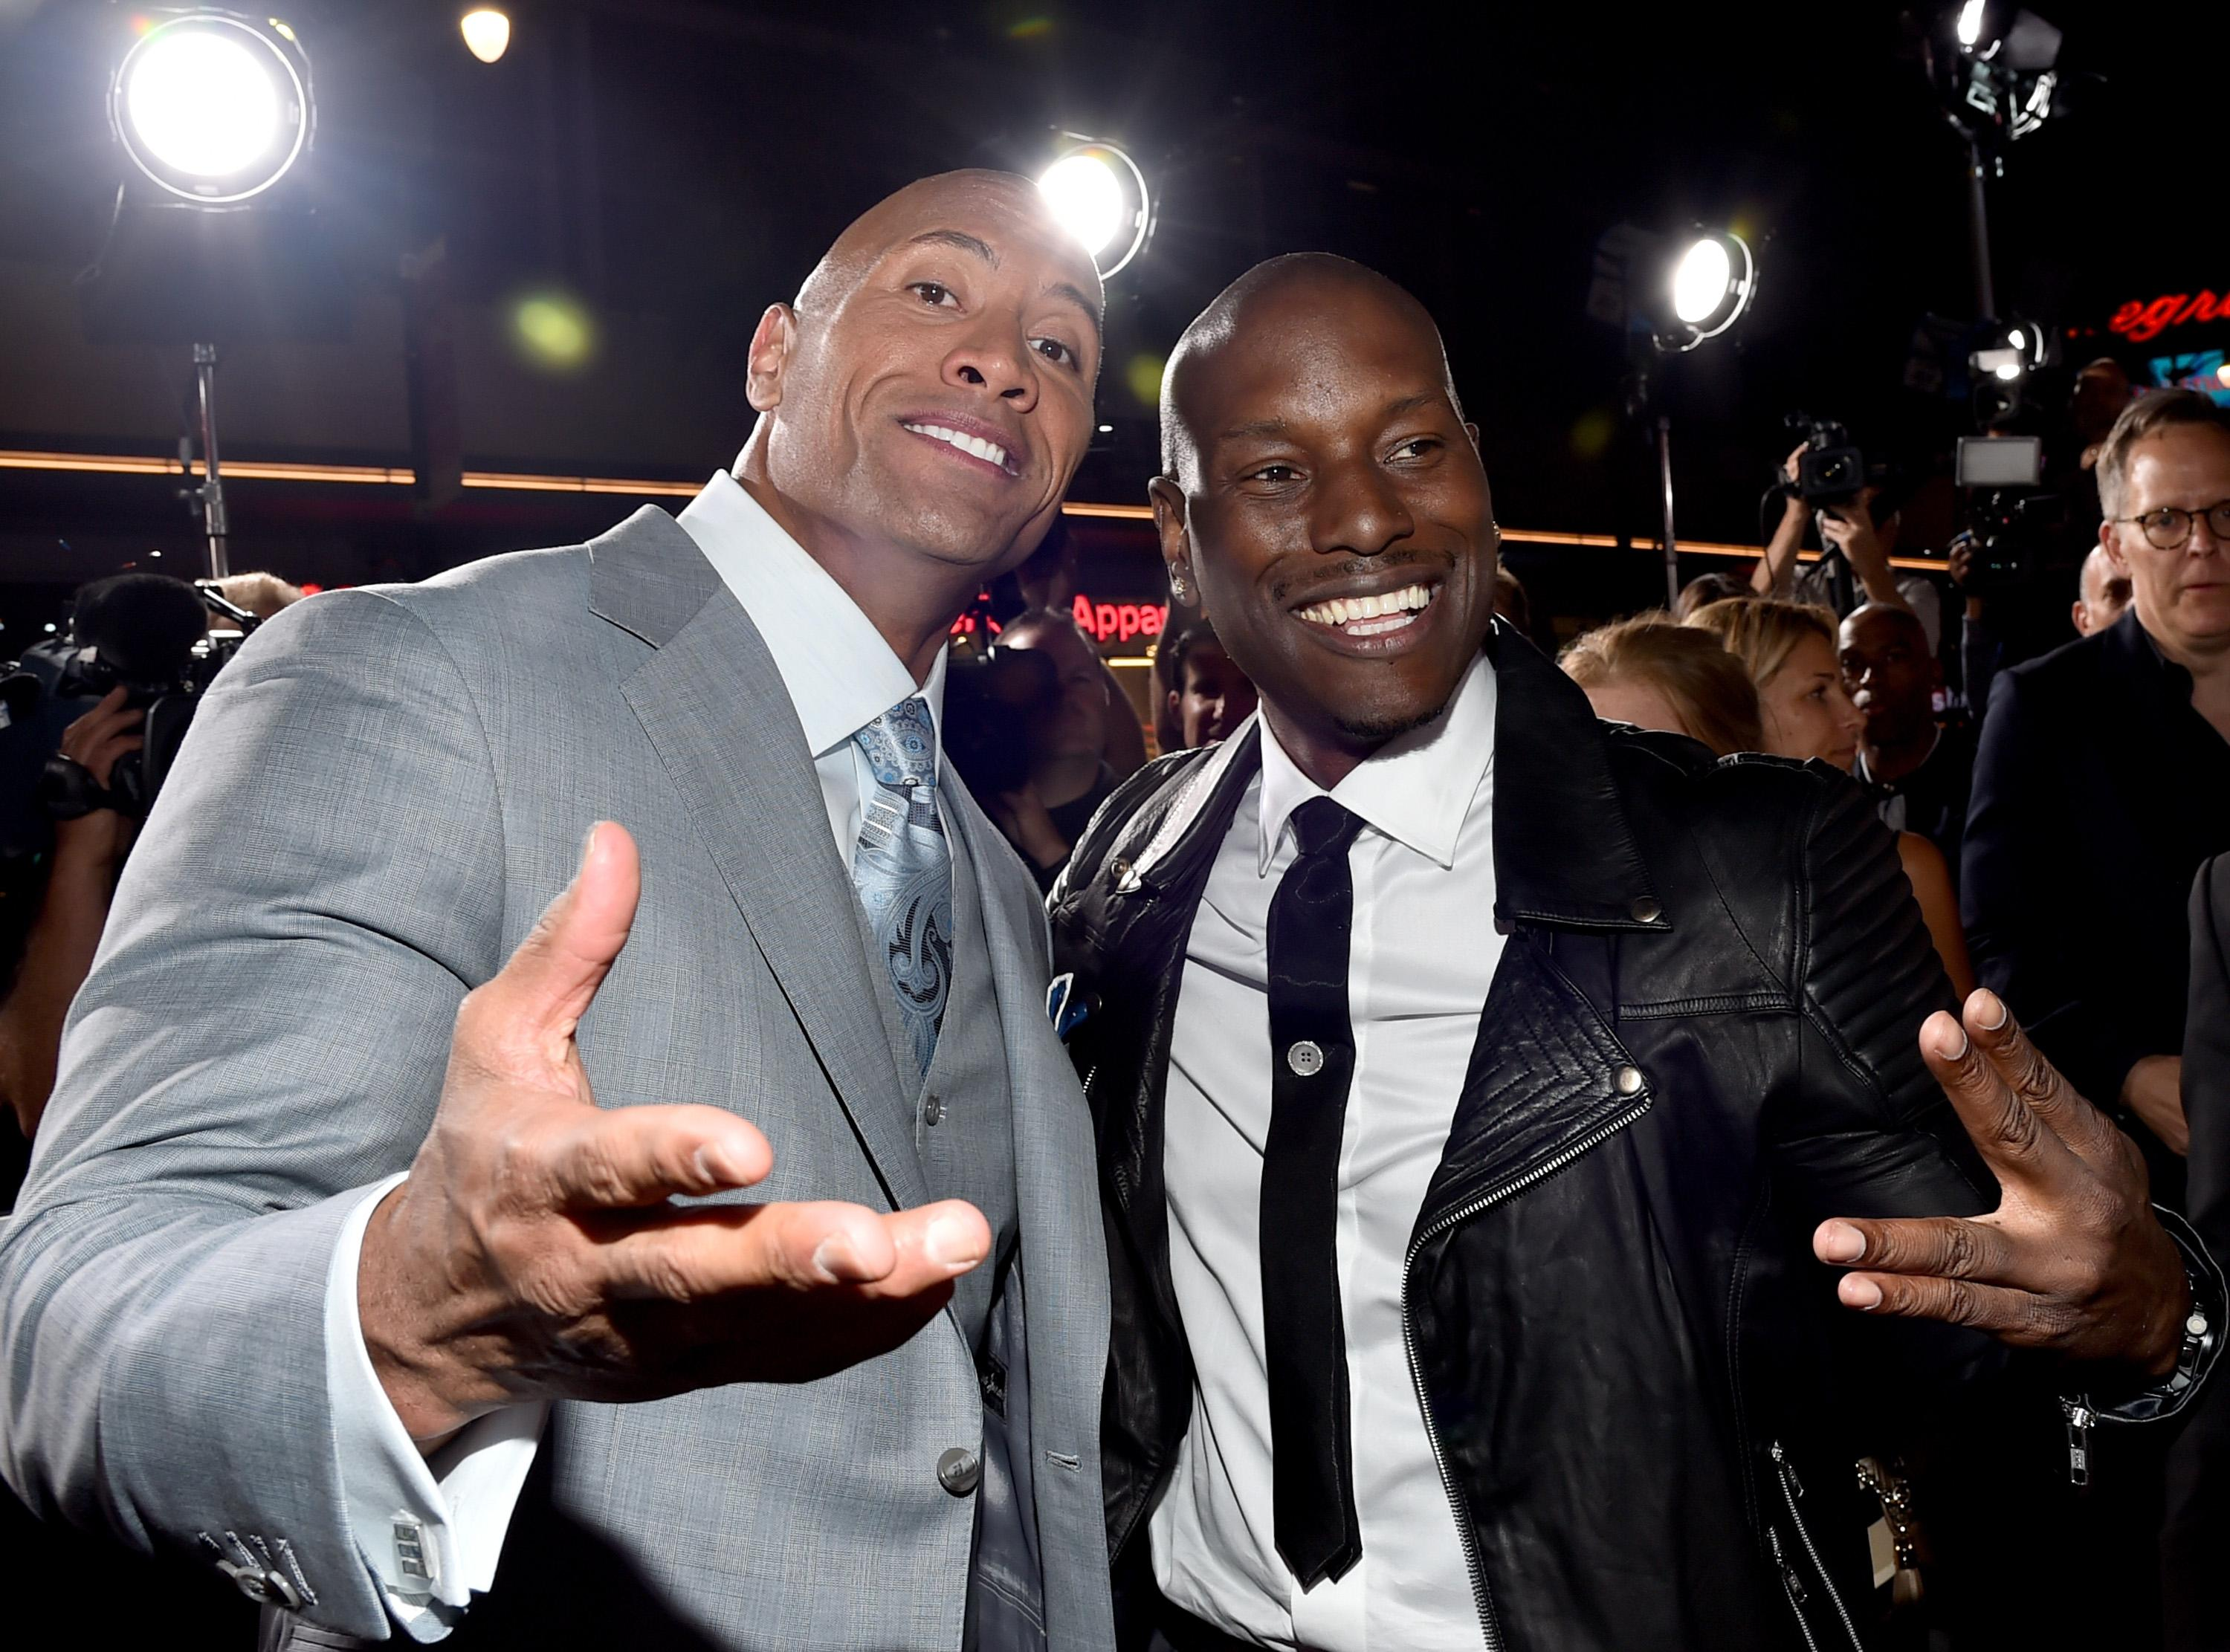 Tyrese threatens to quit 'Fast & Furious' over Dwayne Johnson